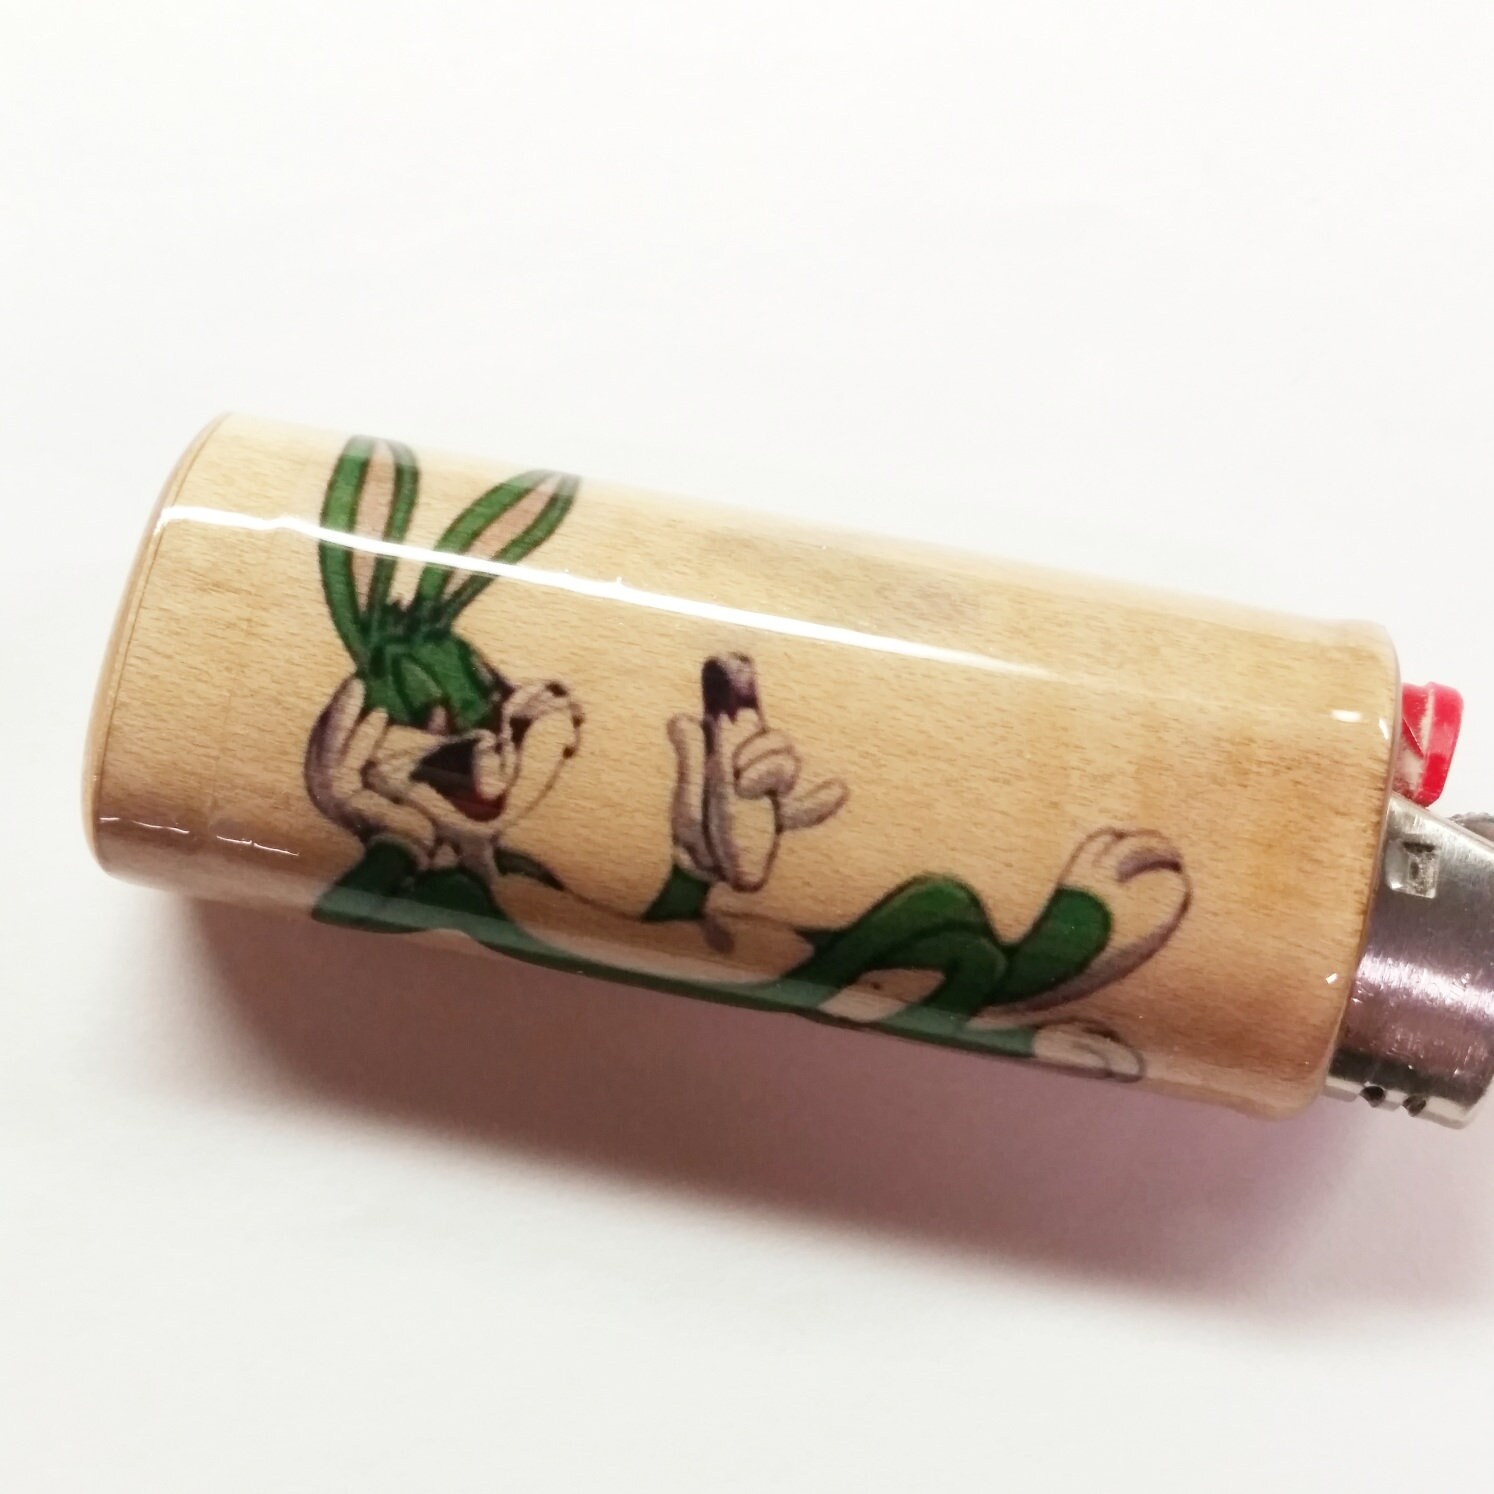 59f8d0d5cb2e Green Bugs Bunny Joint Wood Lighter Case Holder Sleeve Cover Fits Bic  Lighters. 1